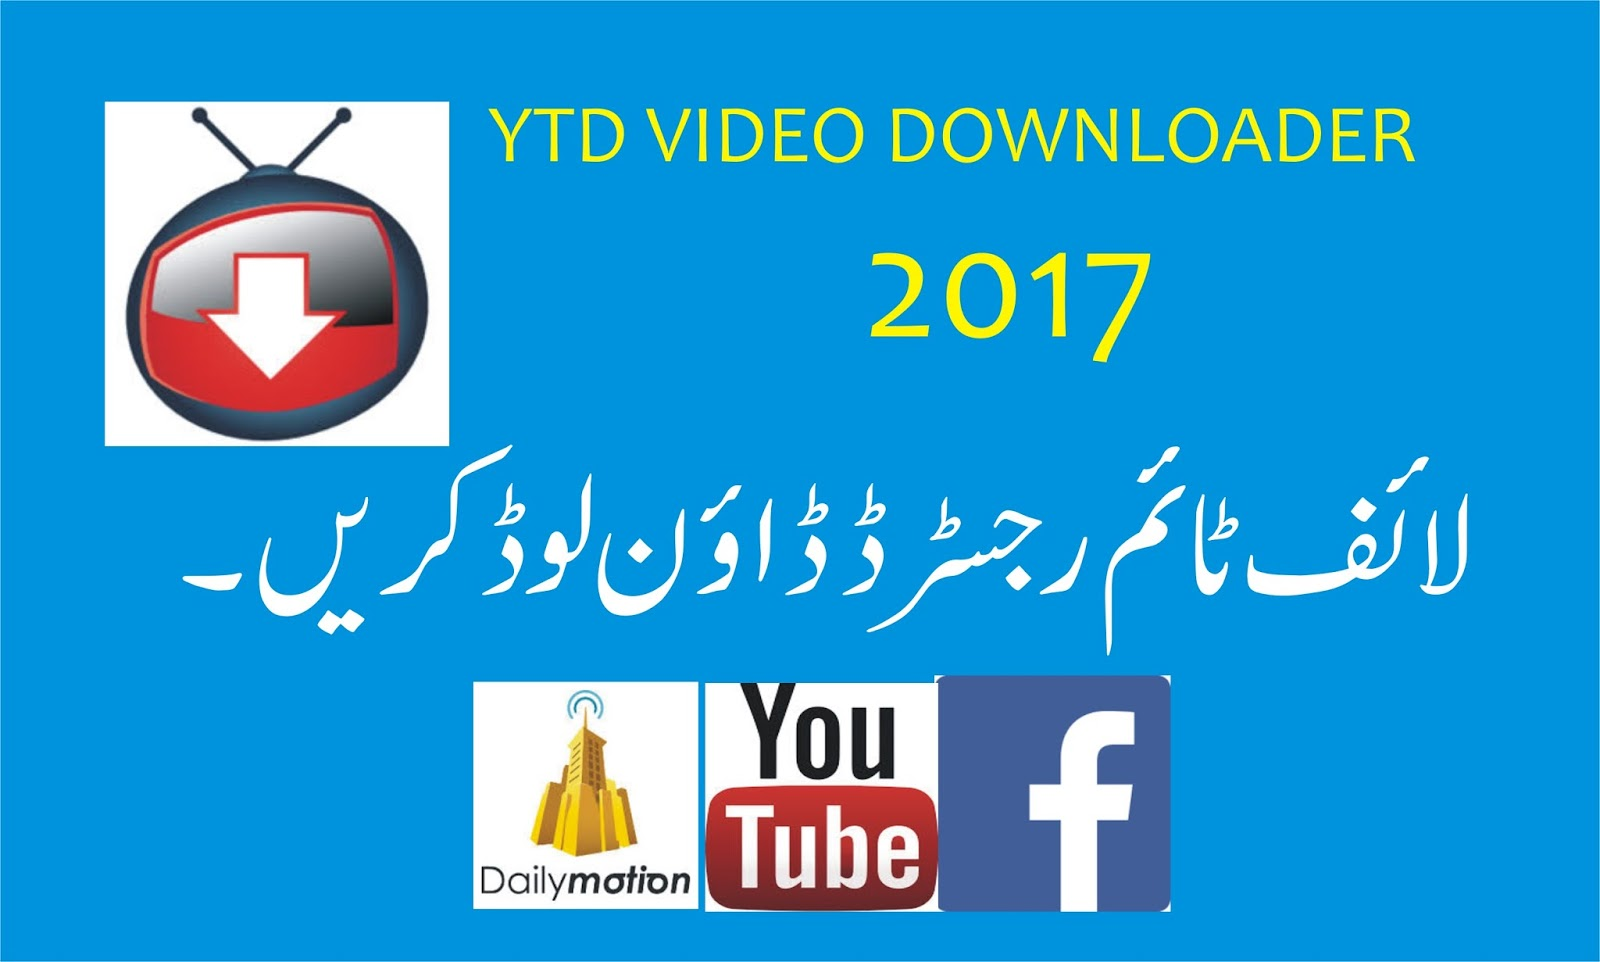 ytd downloader free download full version 2017